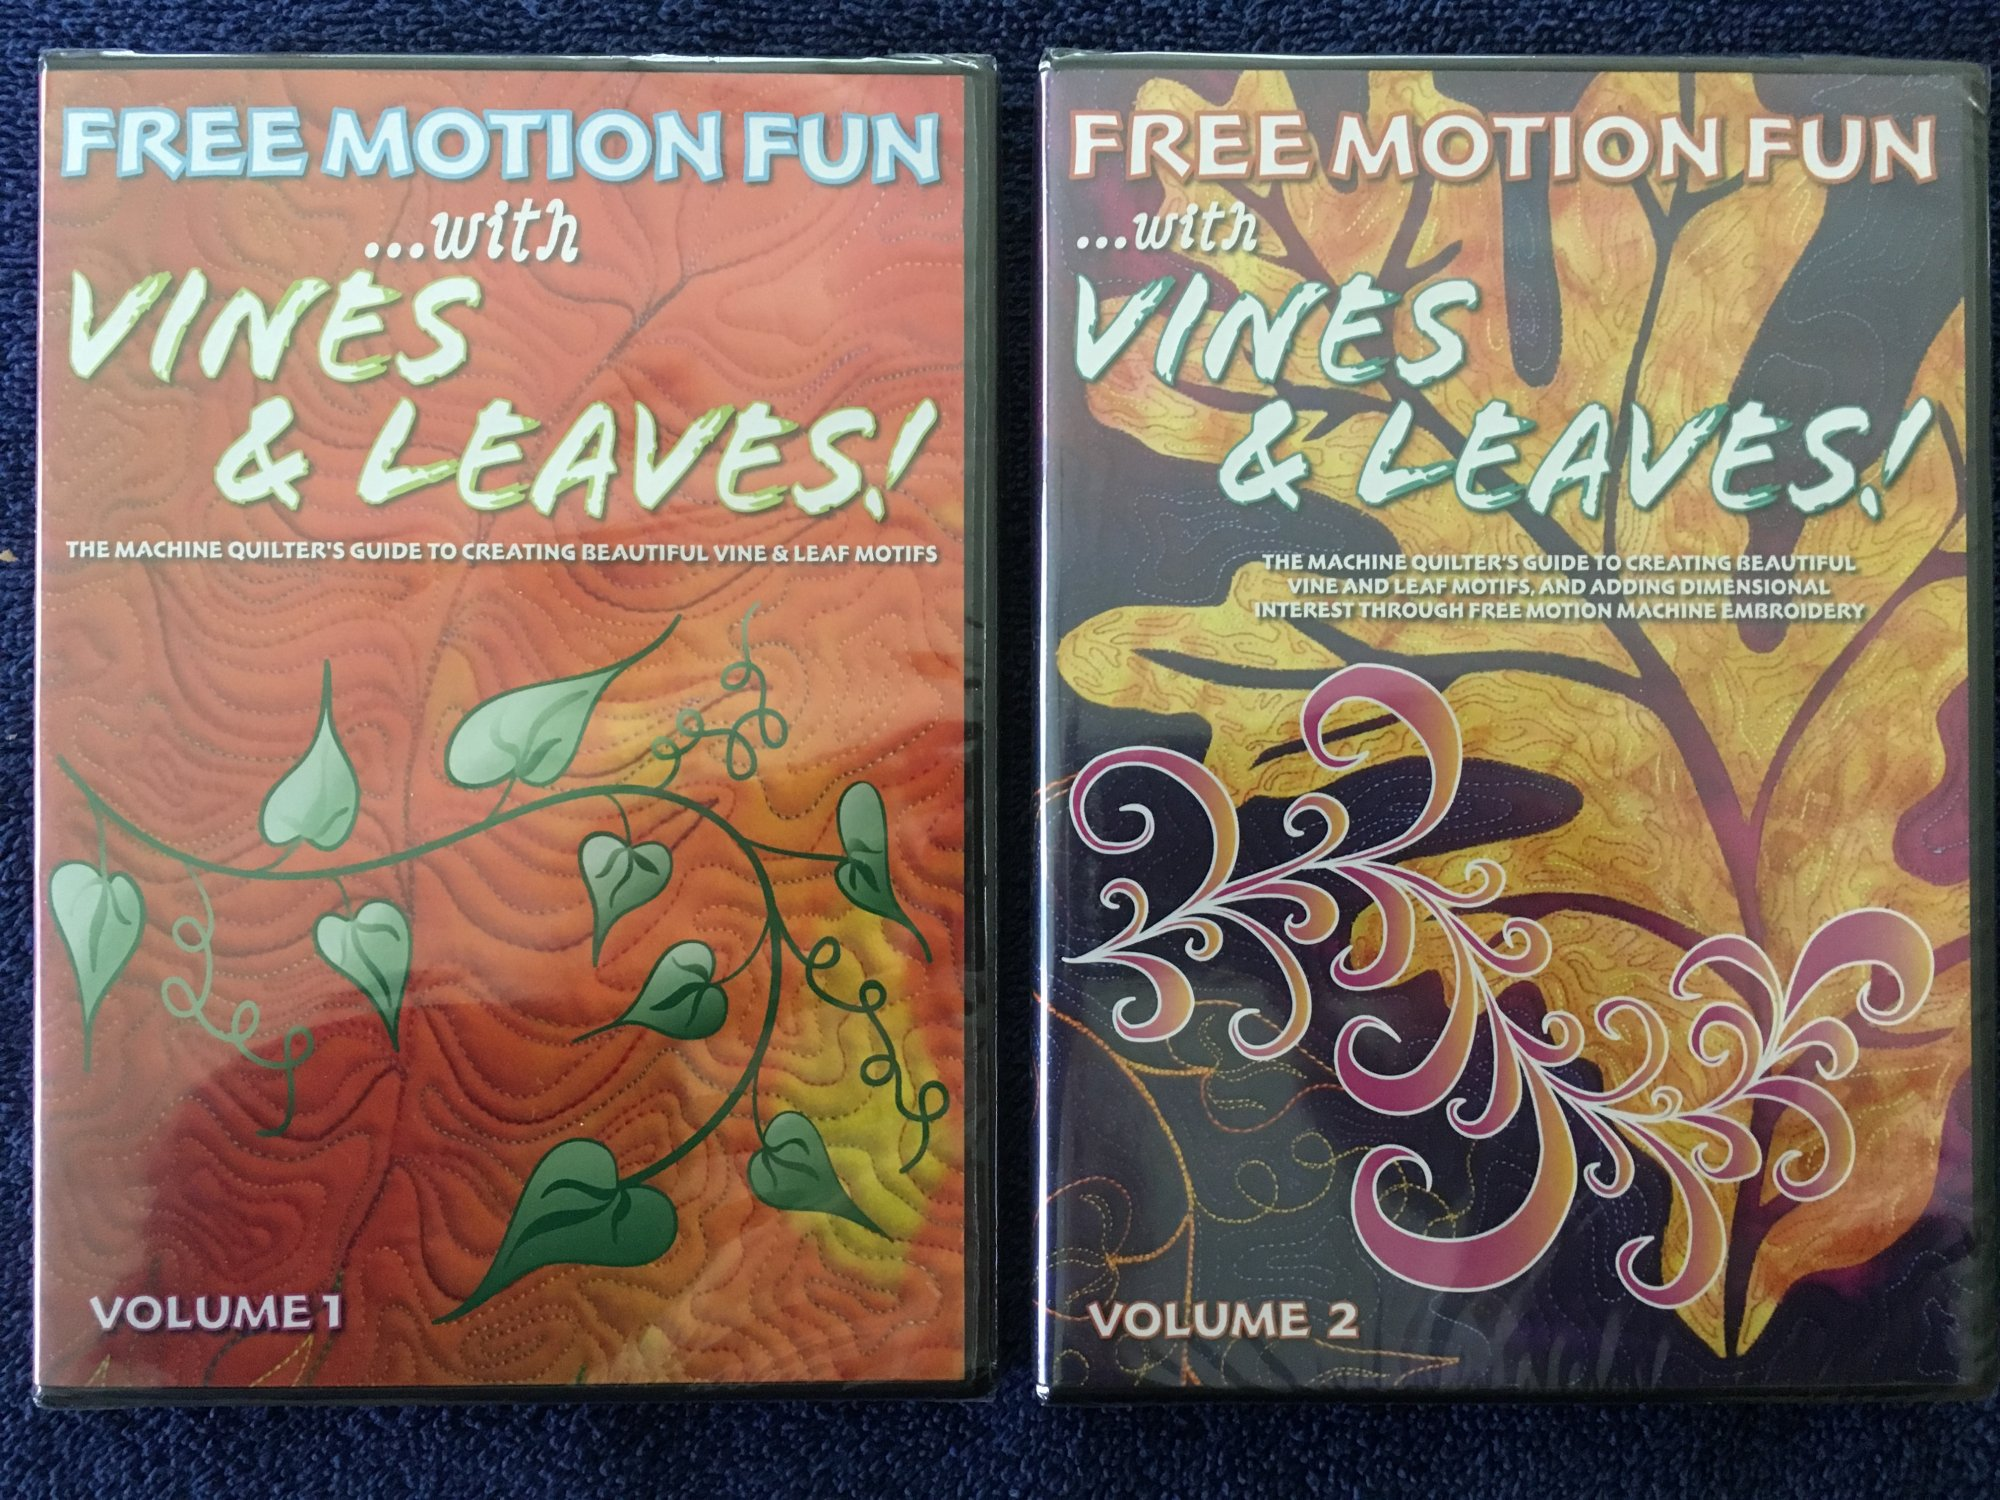 Free Motion Fun with Vines & Leaves Set (vol 1 & 2)